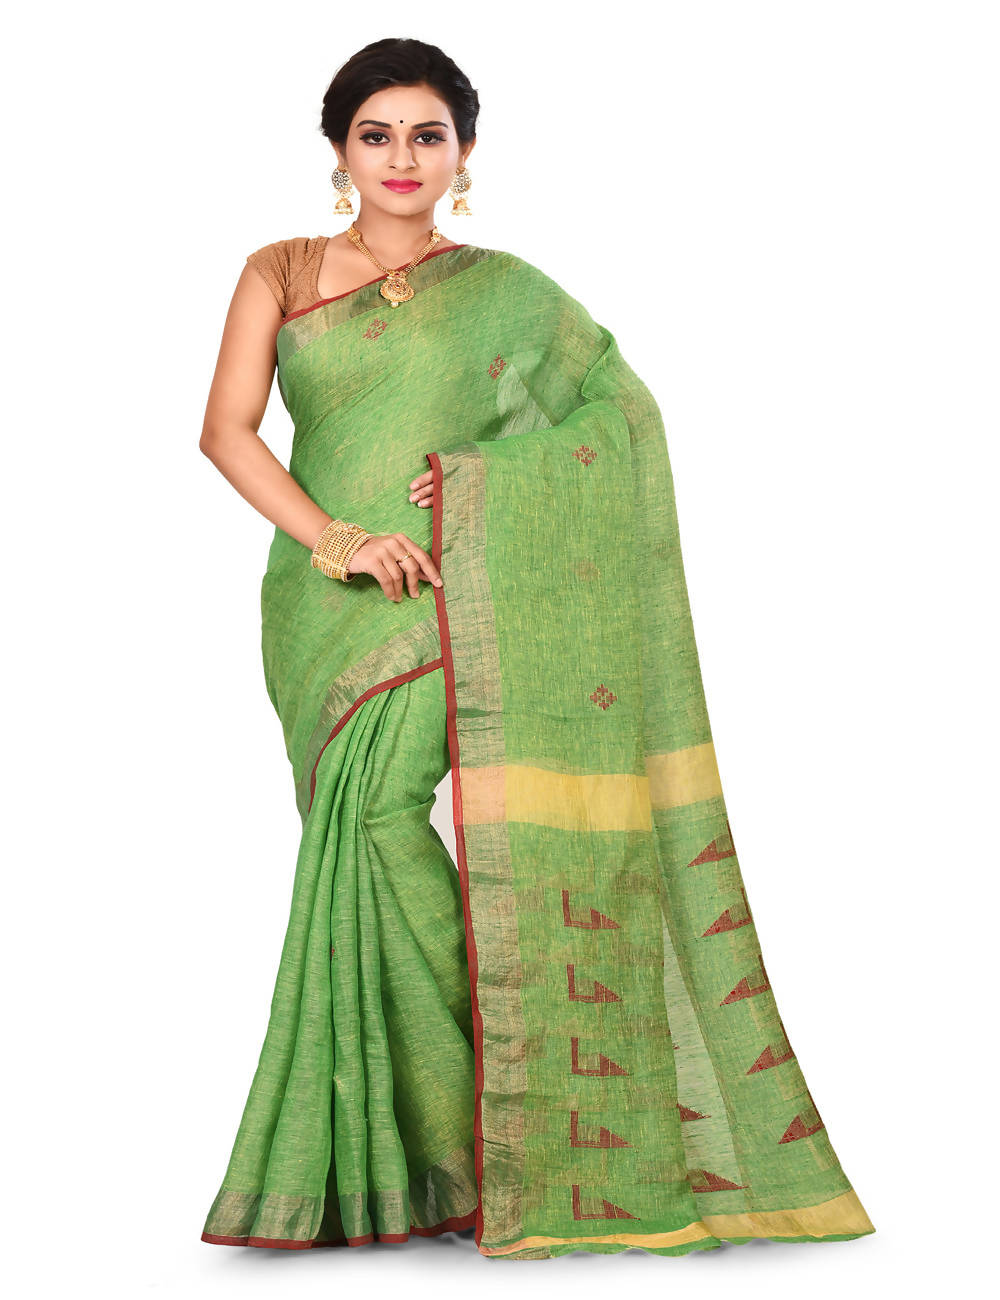 Light green Bengal zari Jamdani Handloom Linen saree